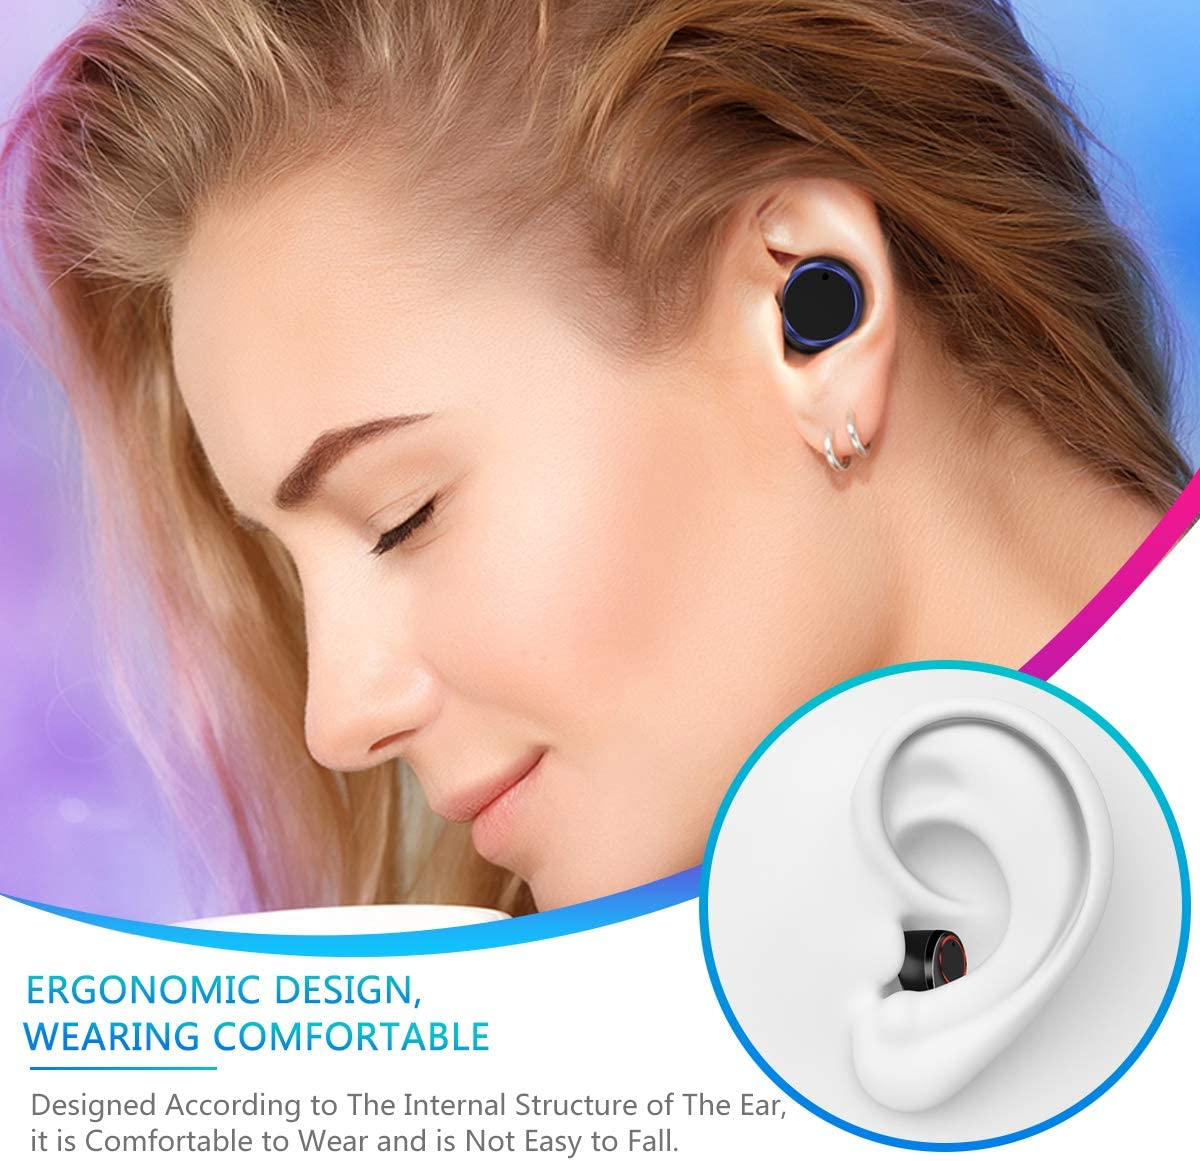 Wireless Earbuds, RegeMoudal Bluetooth Earbuds with Charging Display,Bluetooth Headset Wireless Earphones IPX7 Waterproof Bluetooth 5.0 Hi-Fi Stereo Sound with 4000mAH Charging Case